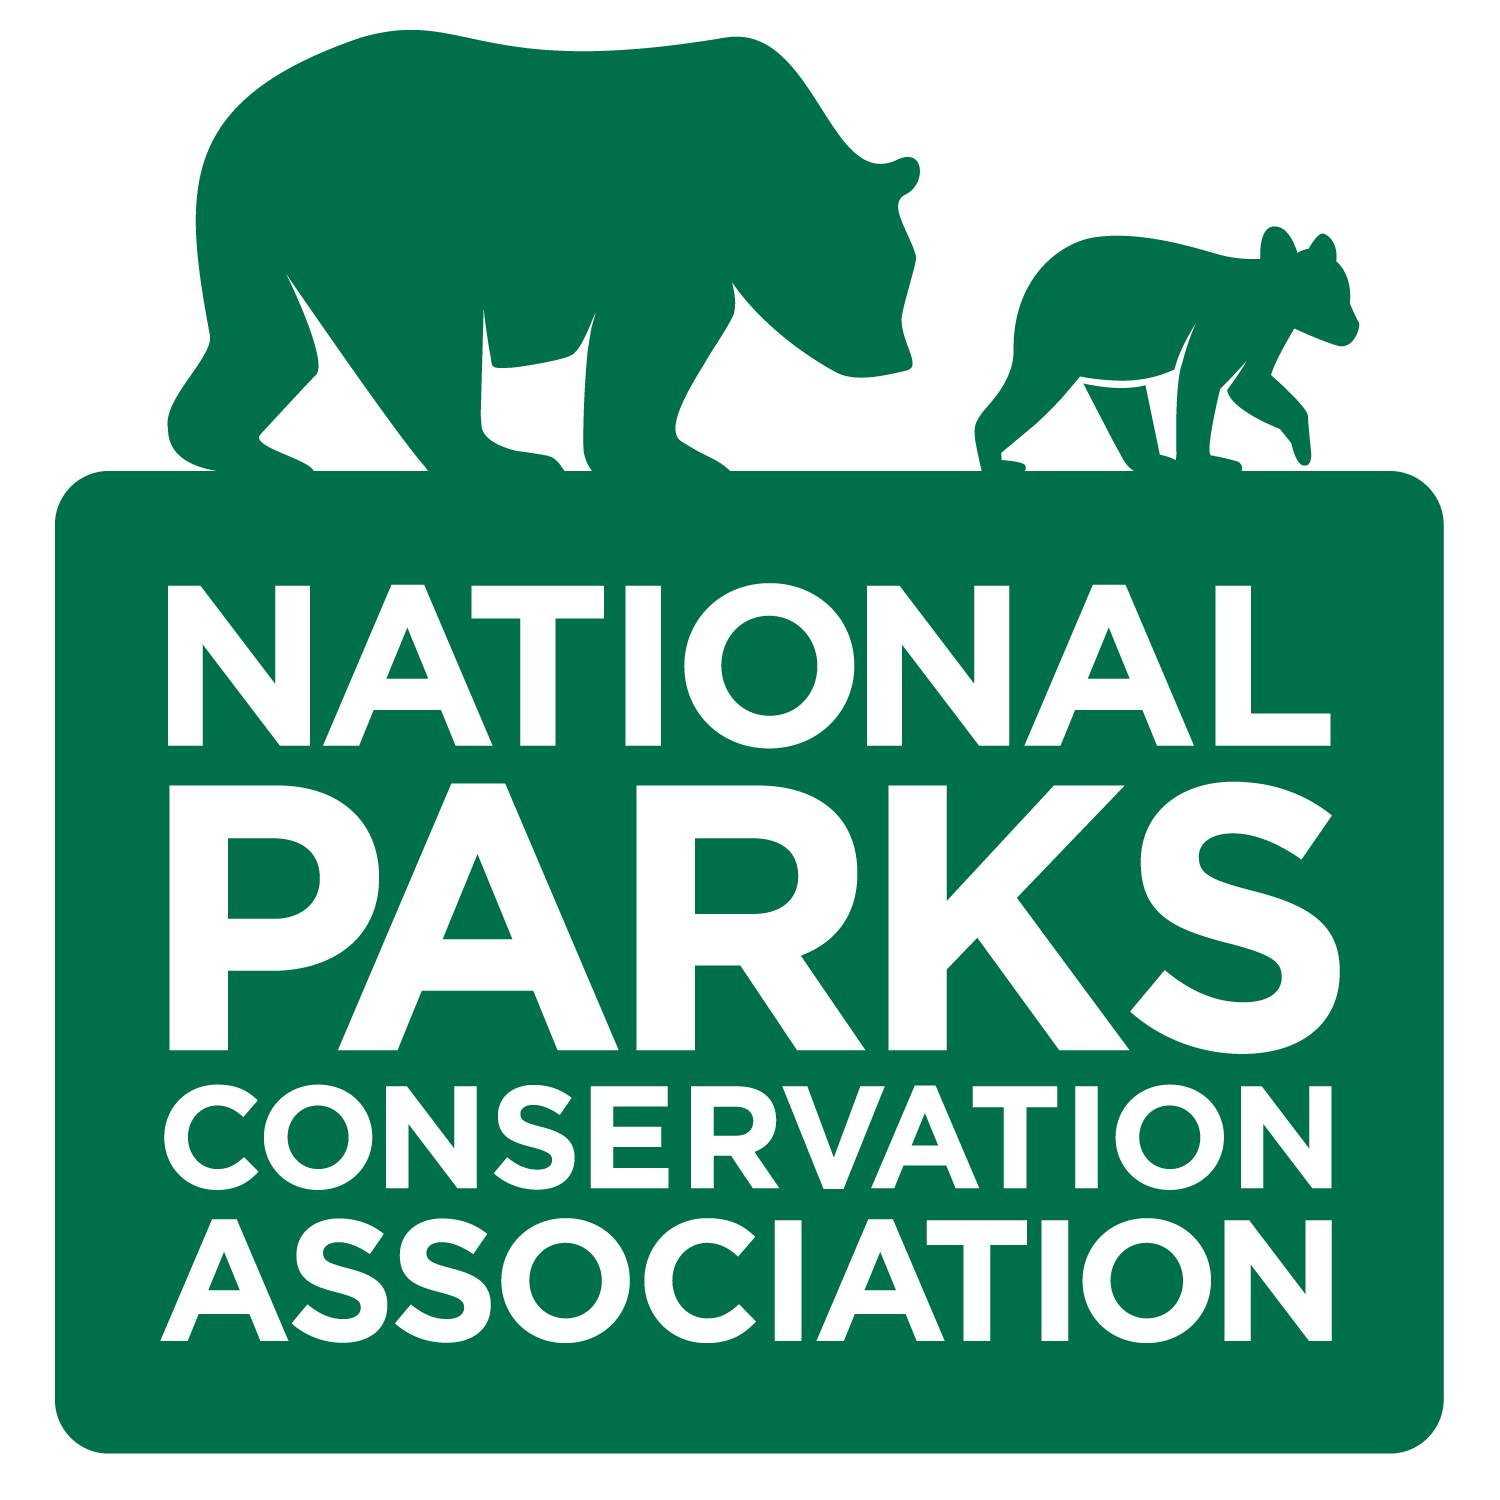 NPCA_LOGO_GREEN_transparent.png